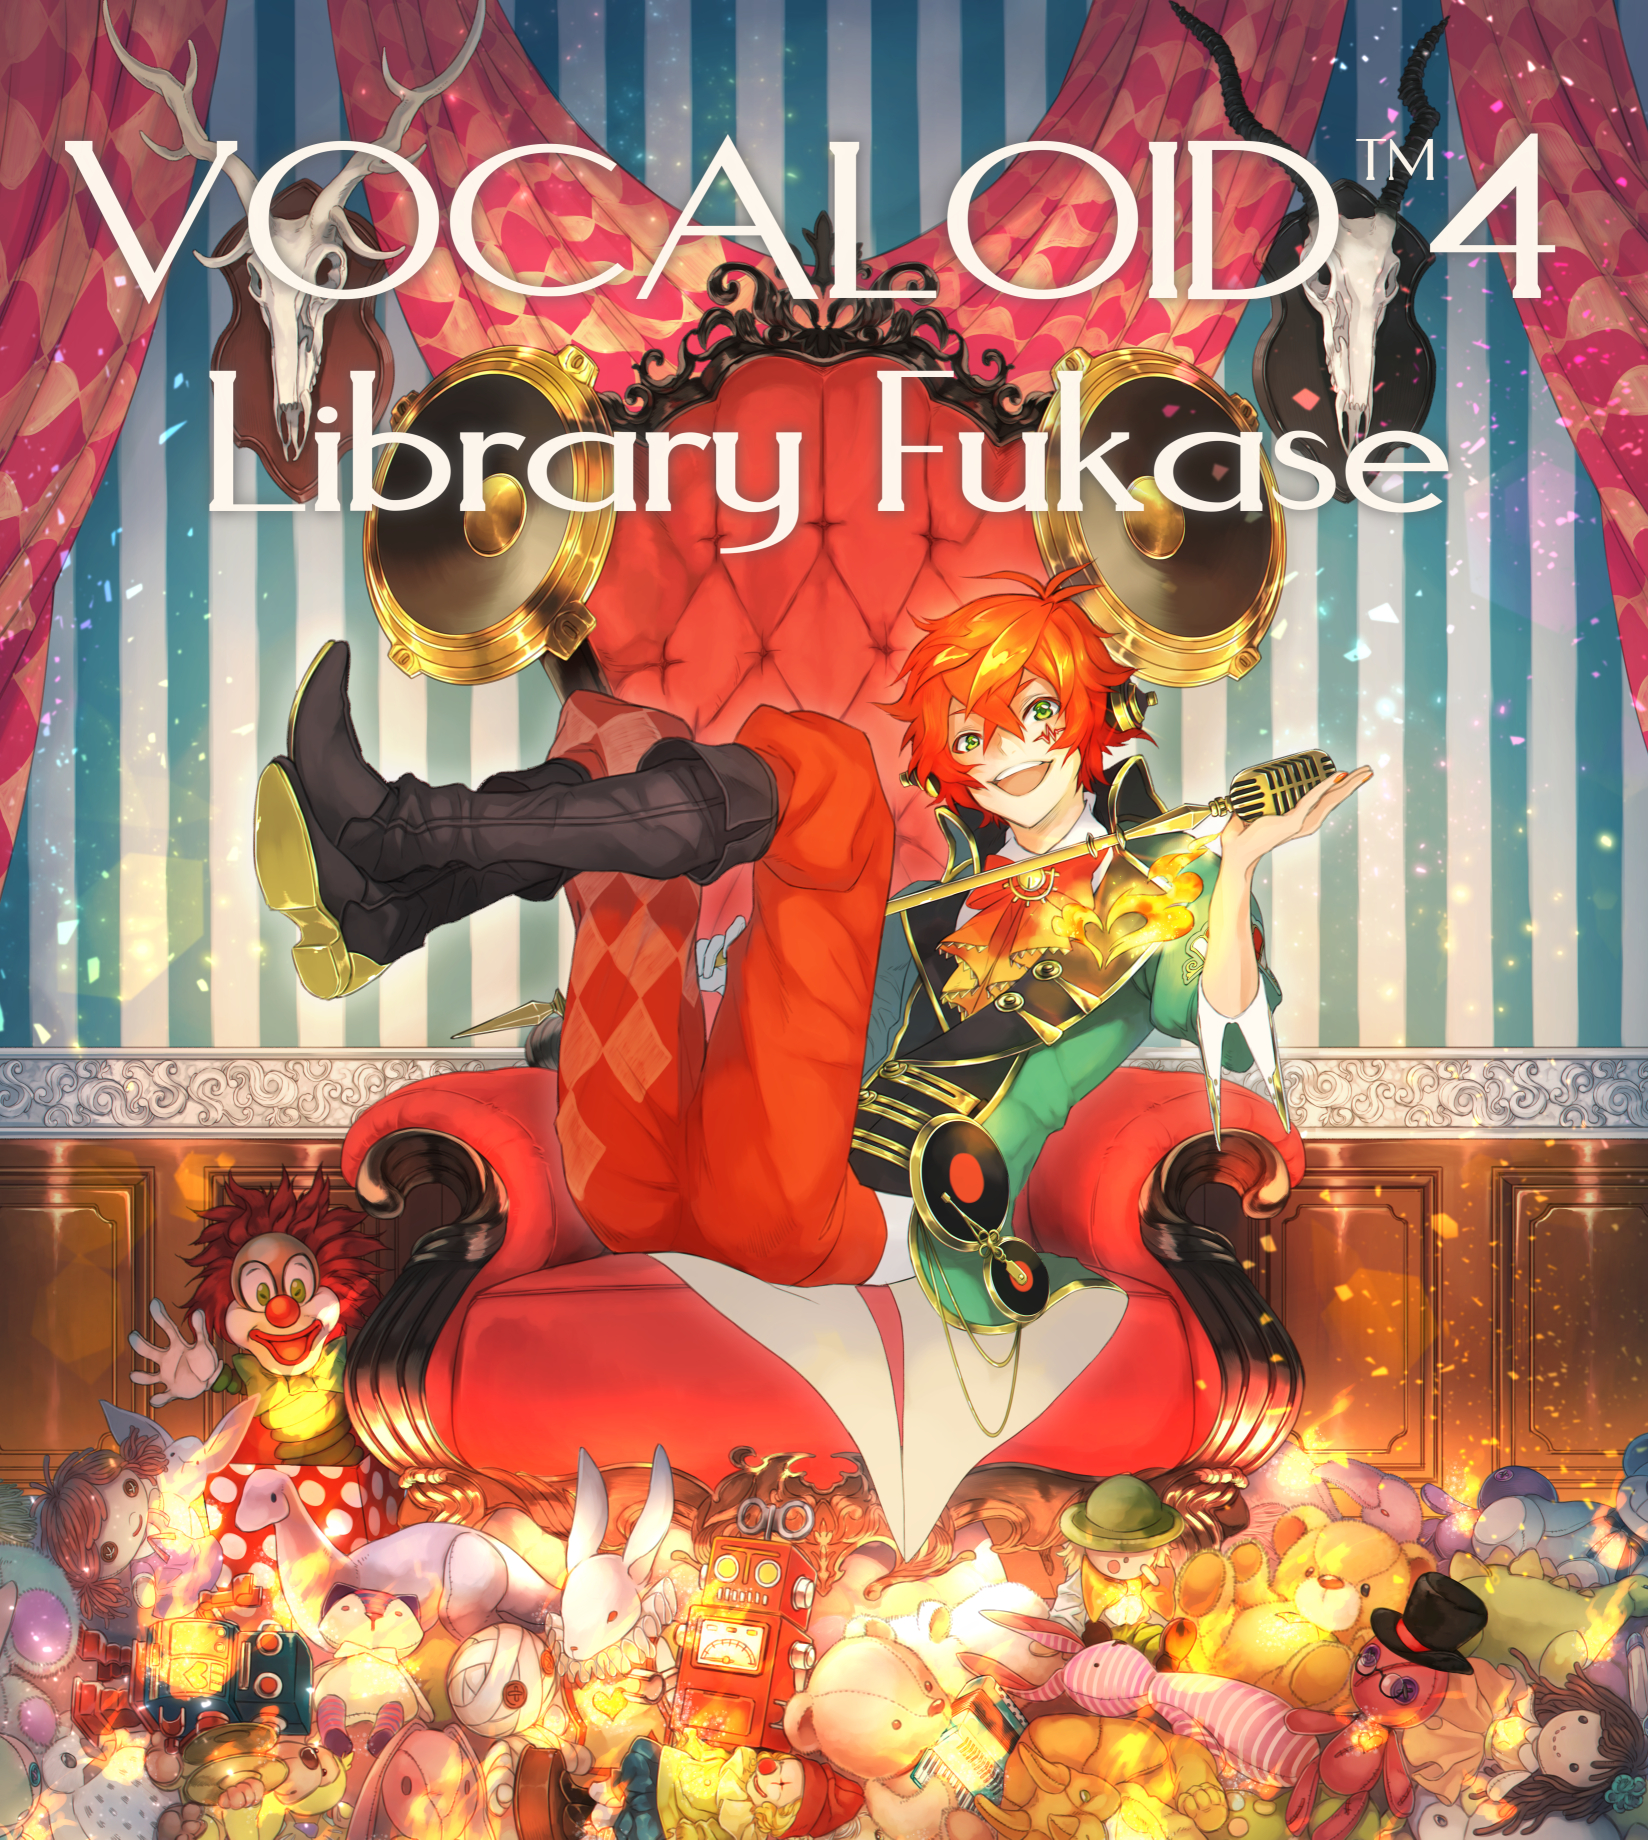 VOCALOID4 Library Fukase Character Design Contest - Fukase